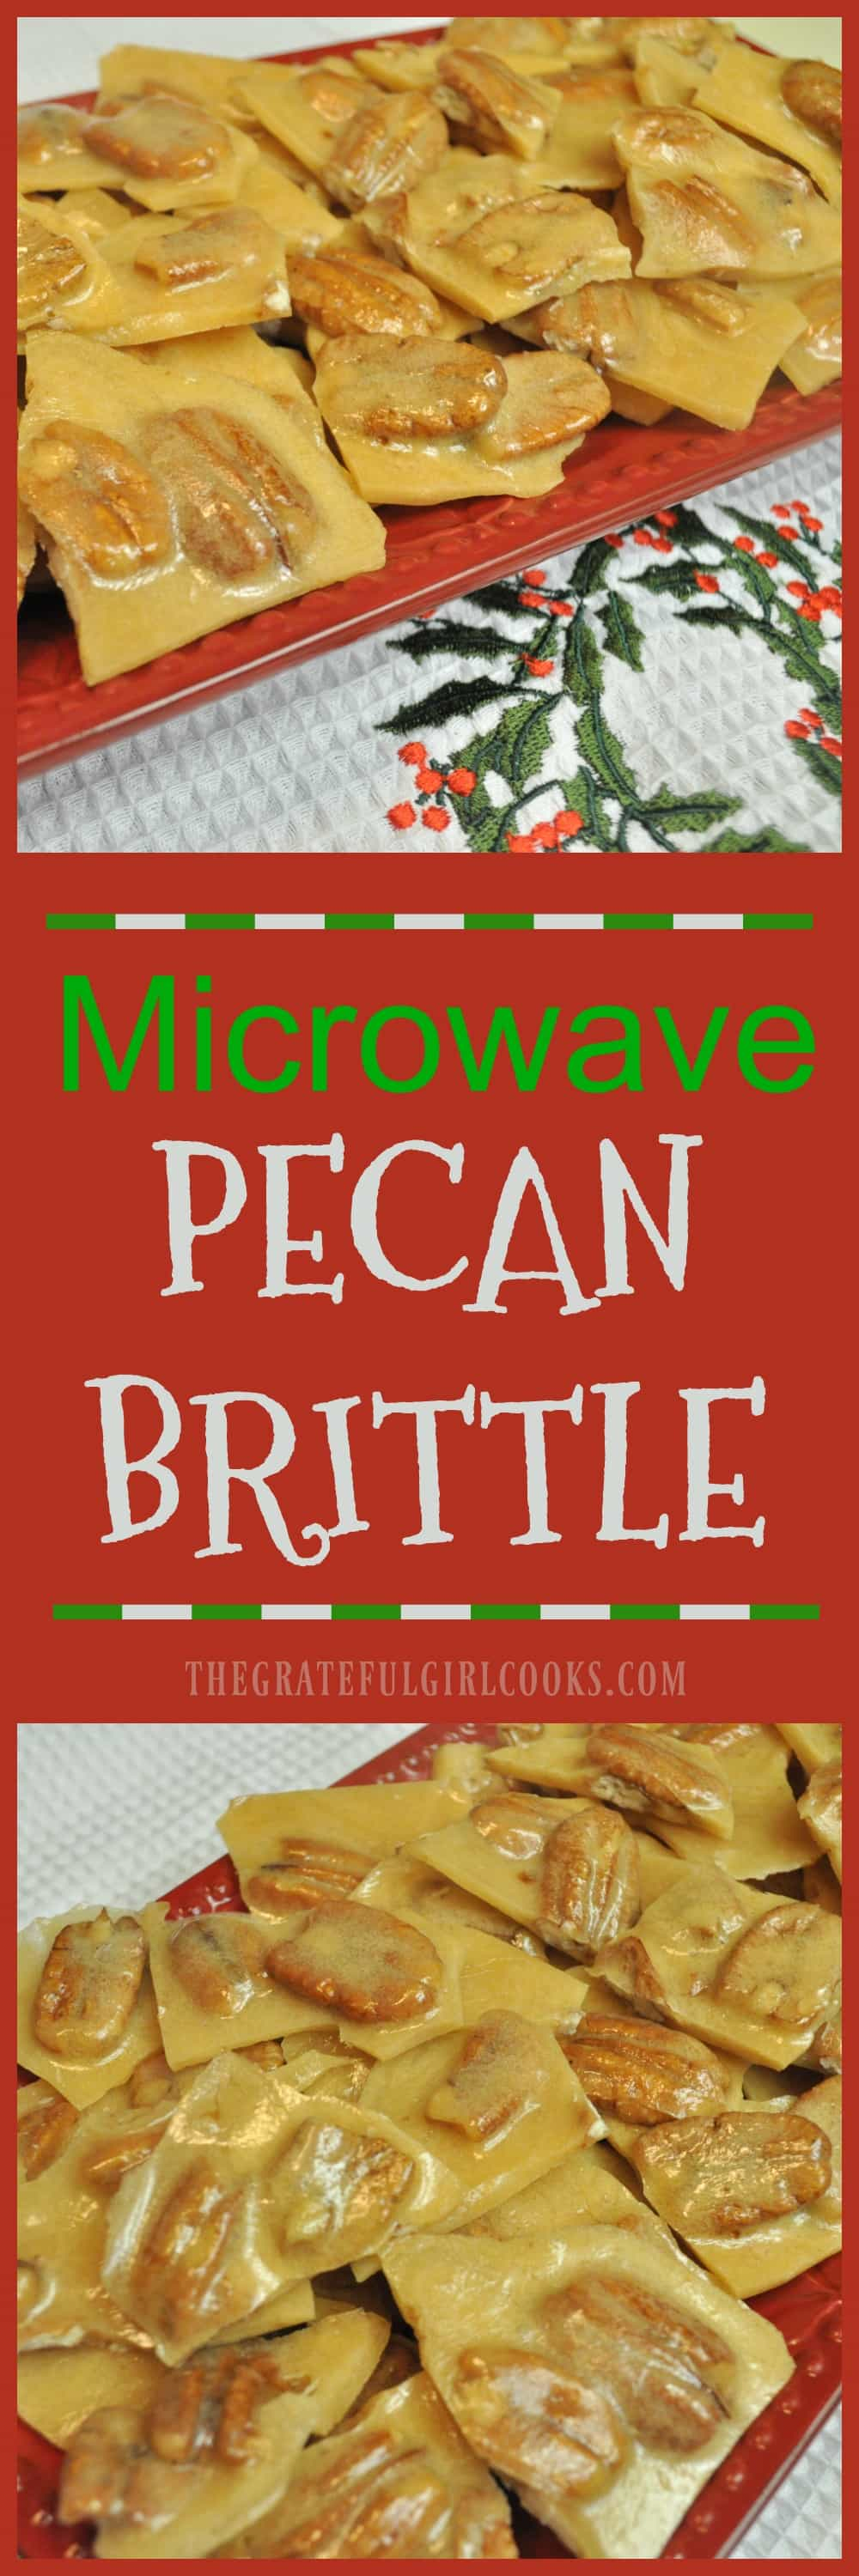 Microwave Pecan Brittle / The Grateful Girl Cooks! Microwave Pecan Brittle is a time-saving twist on a classic candy! This delicious, crunchy holiday treat is easy to make in 15 minutes, using a microwave!